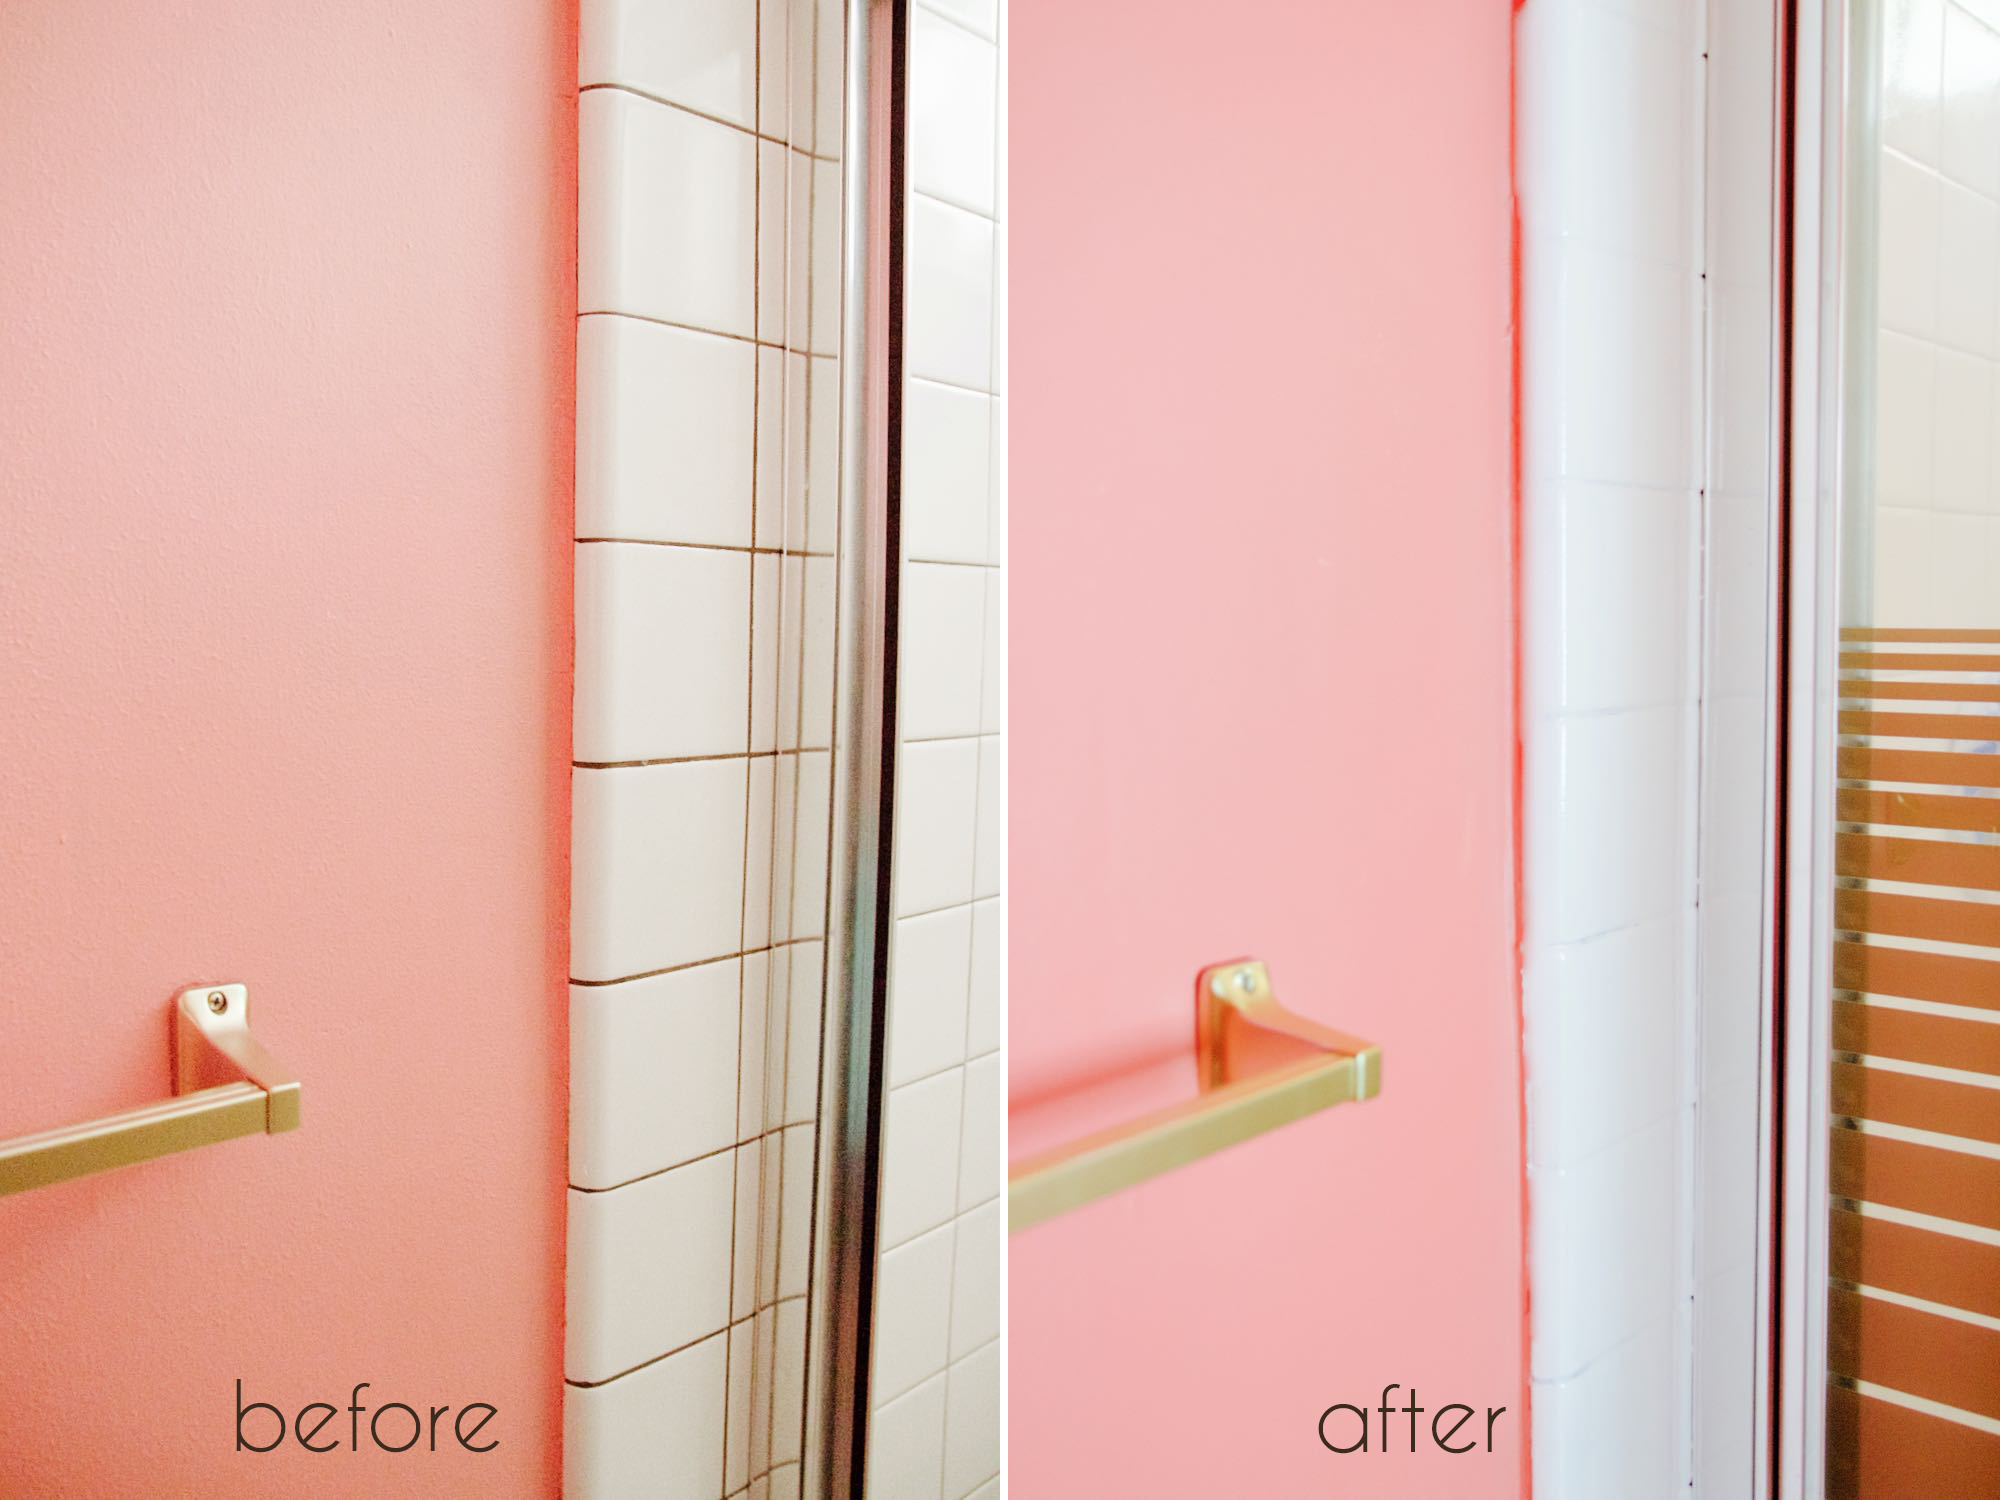 Painted tiles in bathroom -  Bathroom Tile Using Paint How To Get Rid Of Dark Grout Using Paint